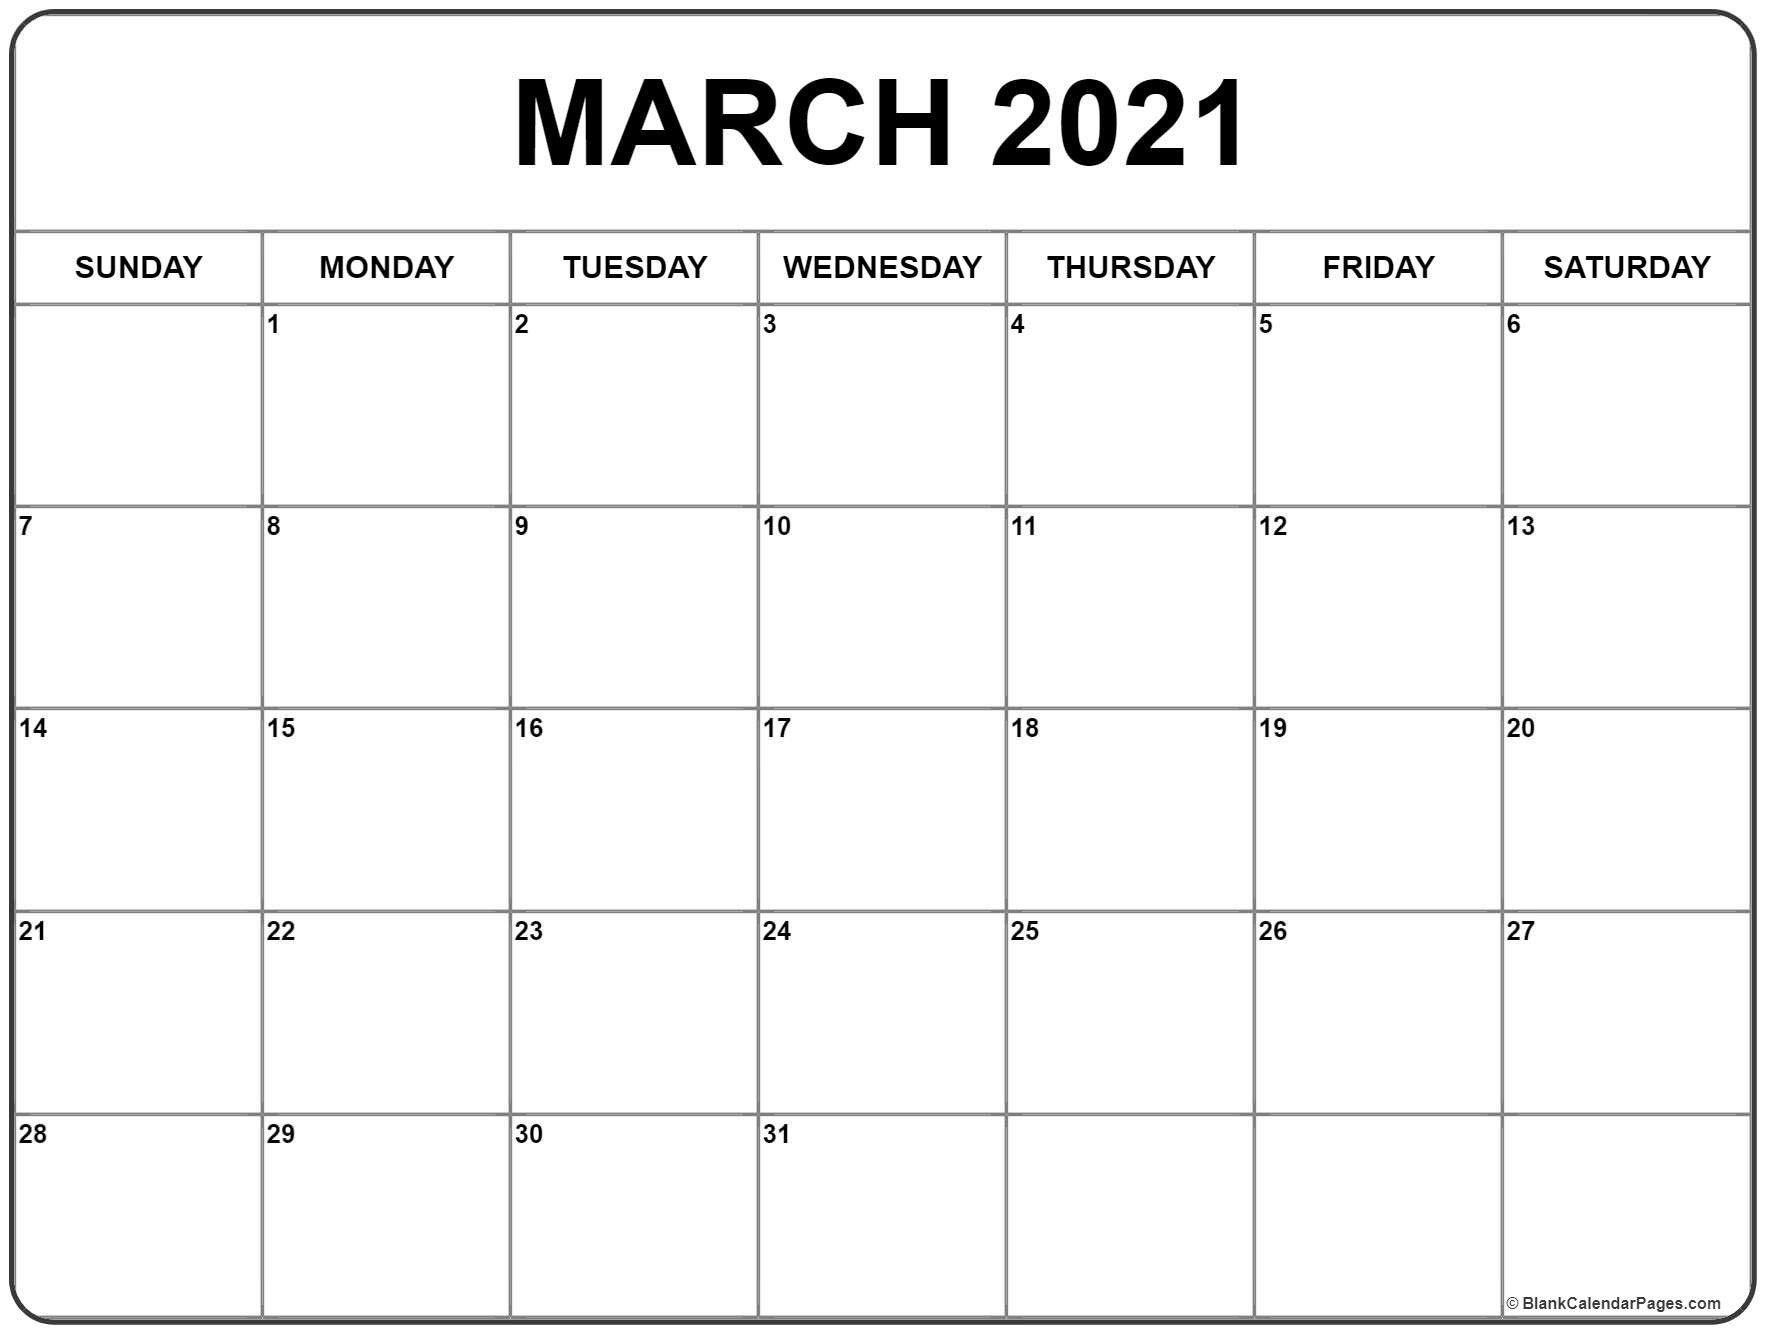 March 2021 Calendar | Free Printable Monthly Calendars  Free Monthly Calendar Printable March 2021